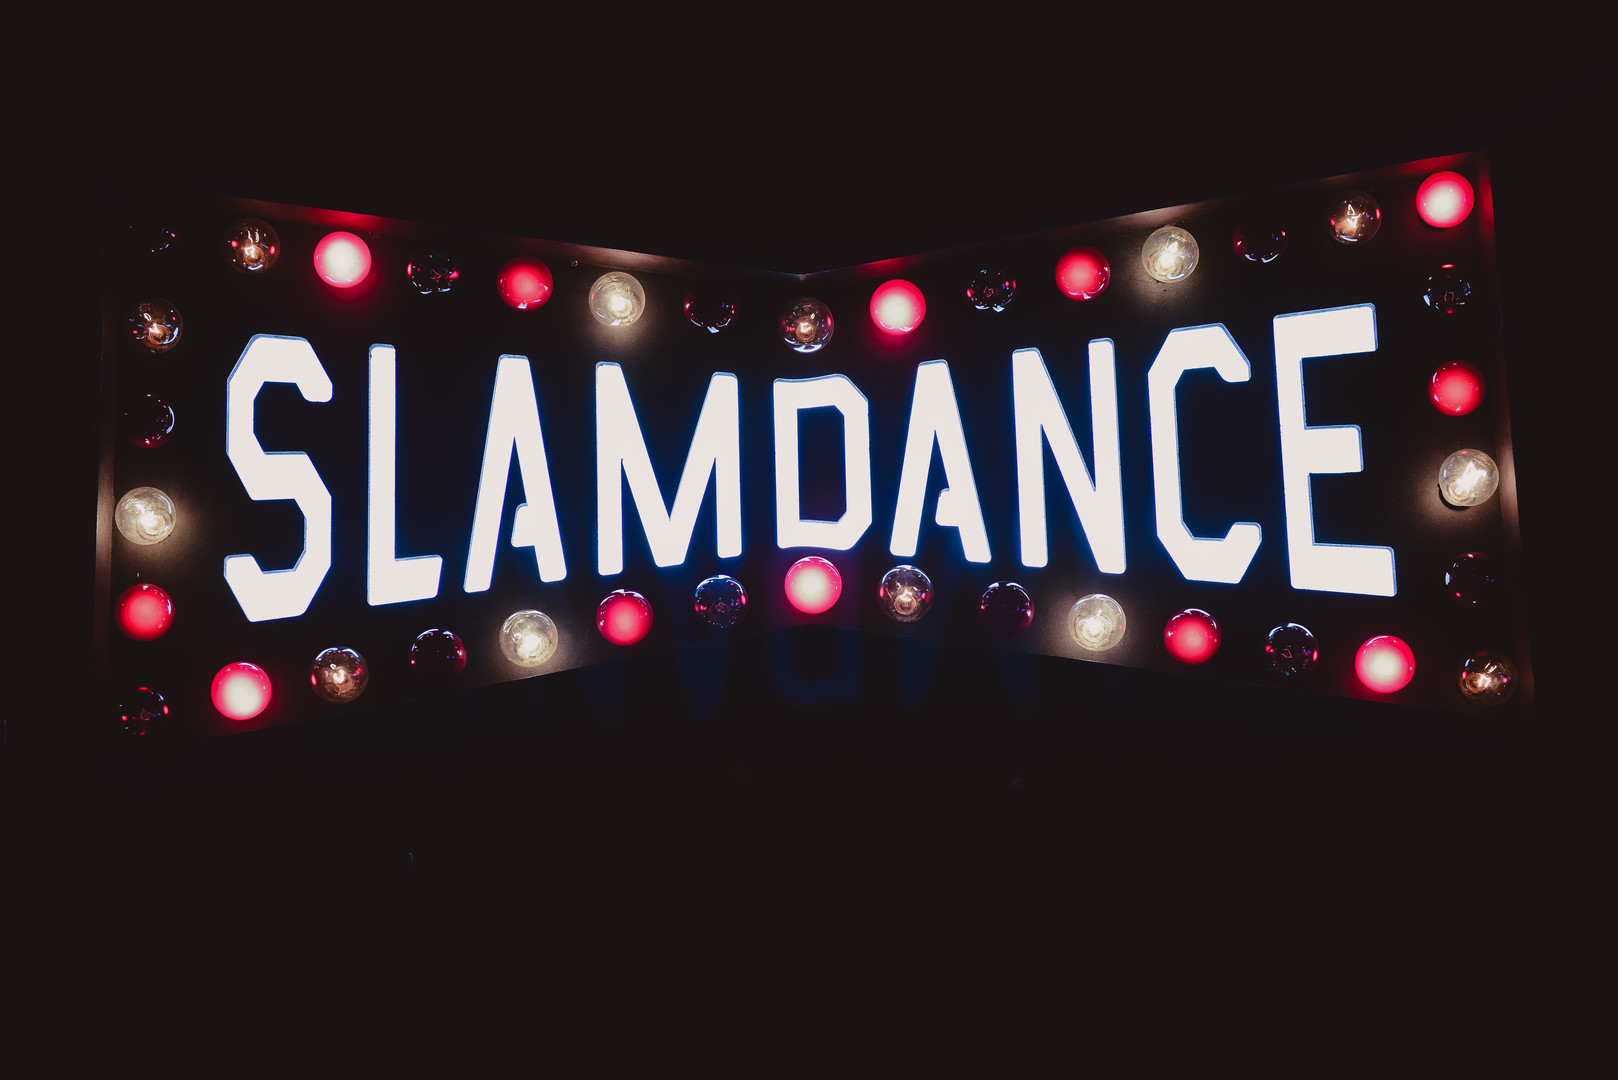 Slamdance sign lit up